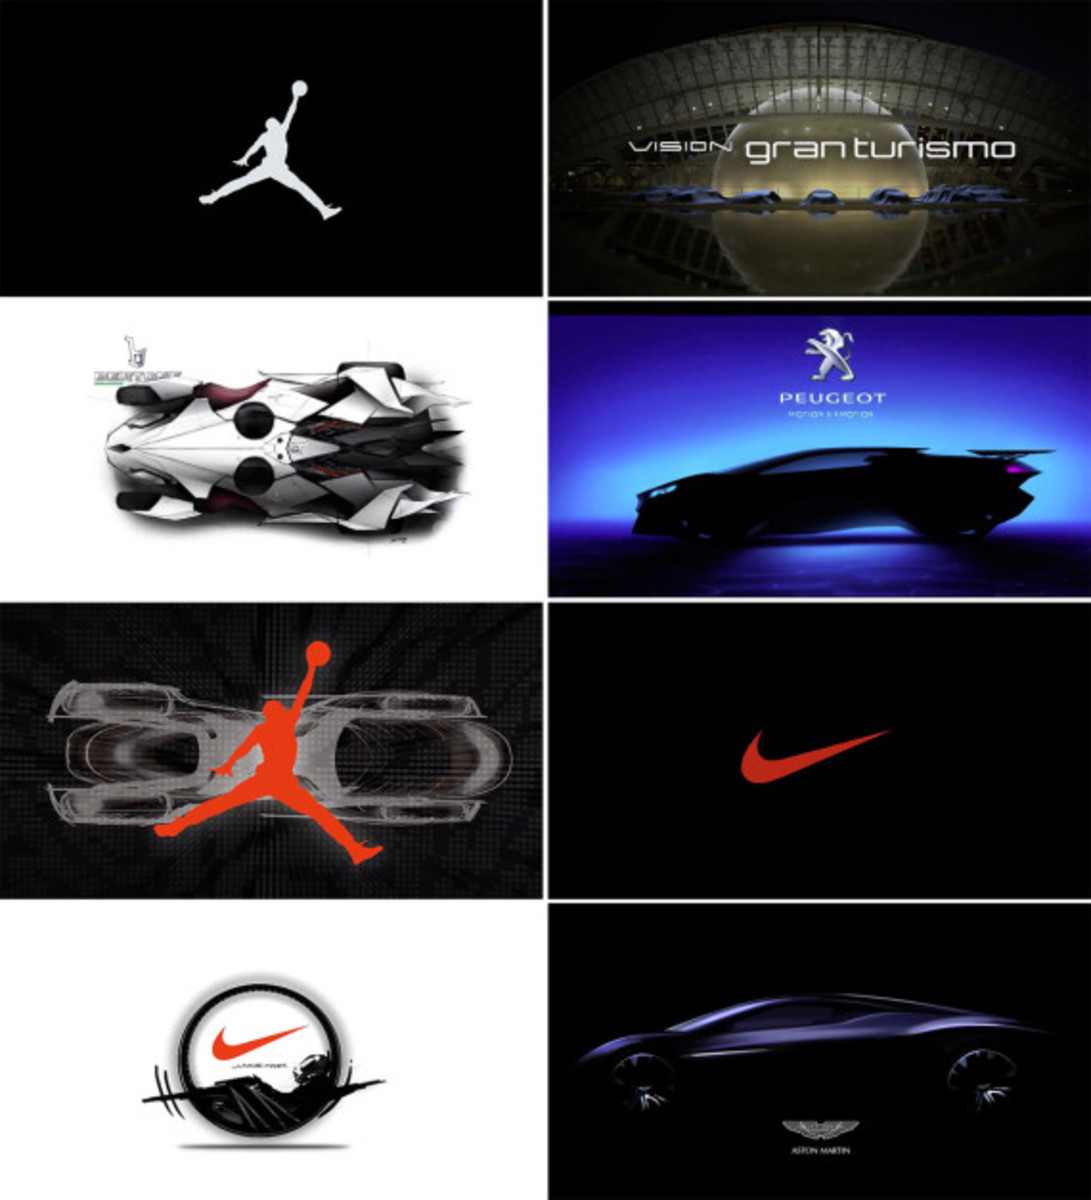 Nike & Jordan Brand To Unveil Concept Car Designs on Gran Turismo 6 | Video - 0